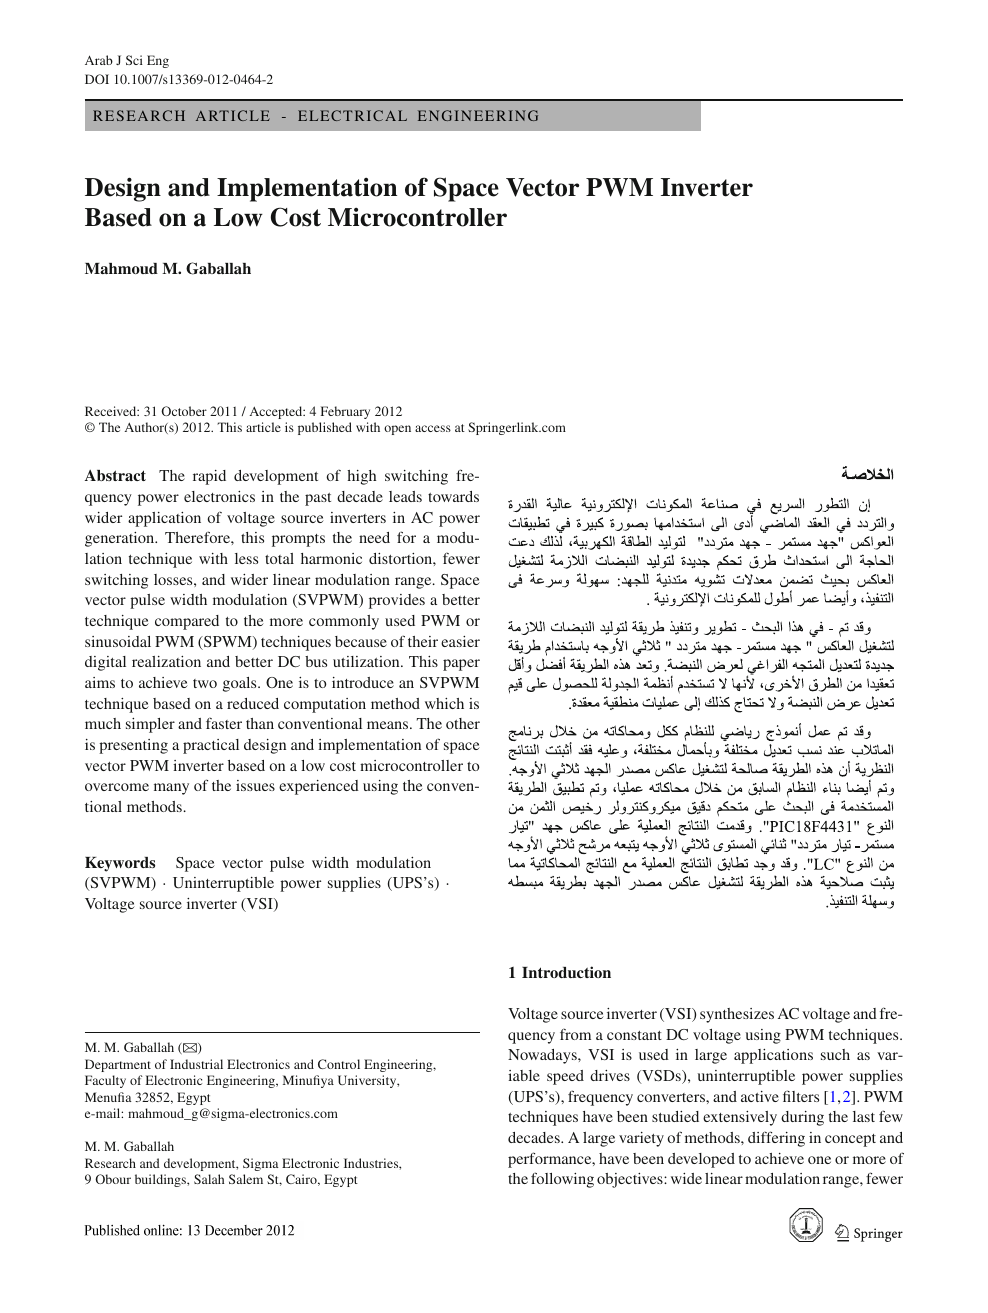 Design and Implementation of Space Vector PWM Inverter Based on a